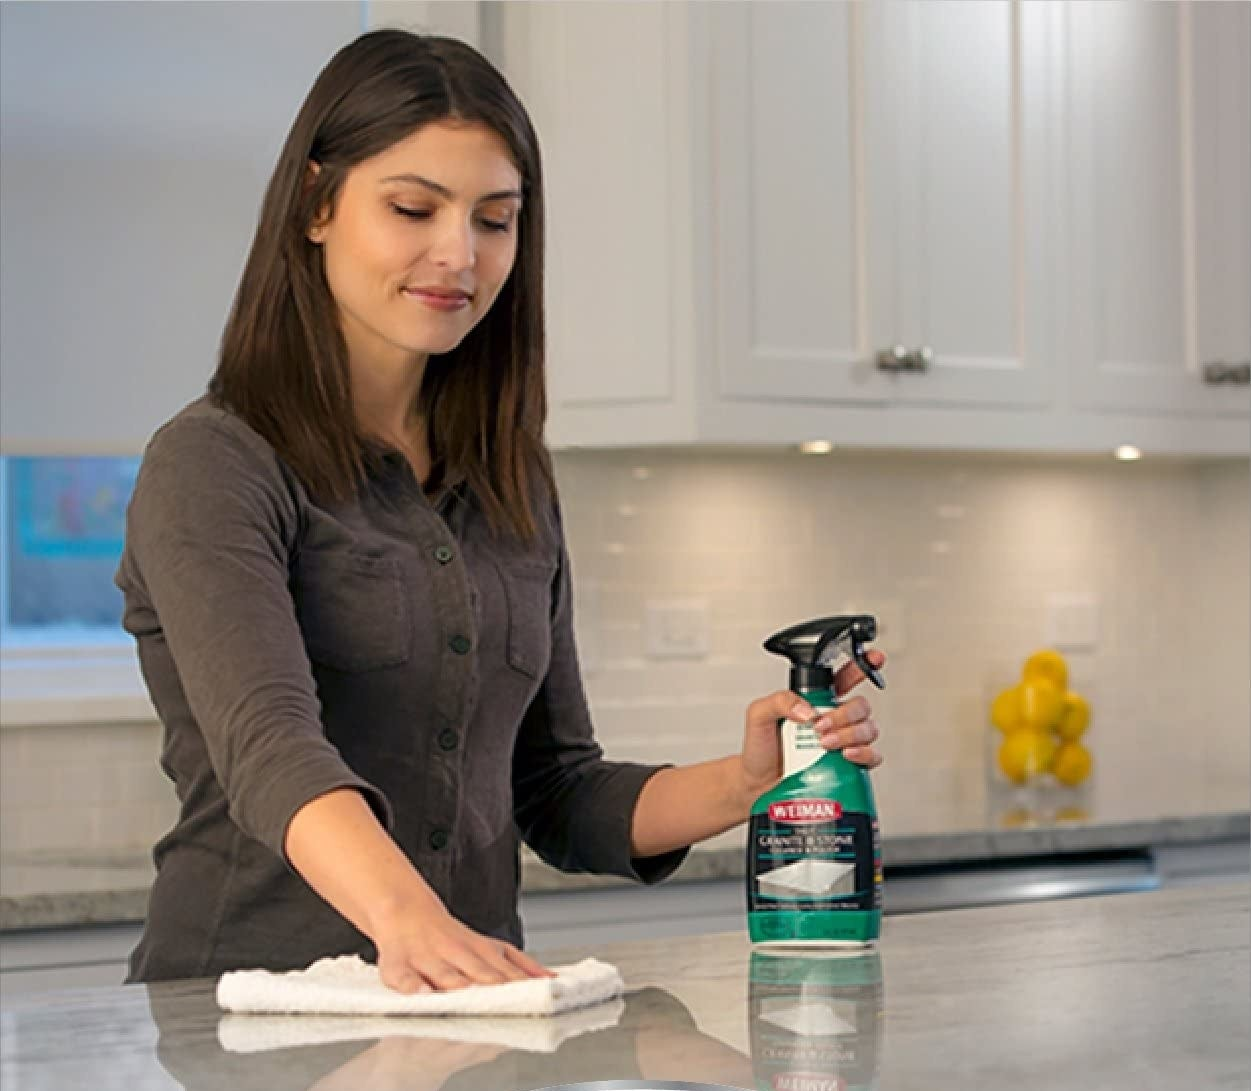 Model wiping counter with cloth and holding bottle of granite cleaning spray